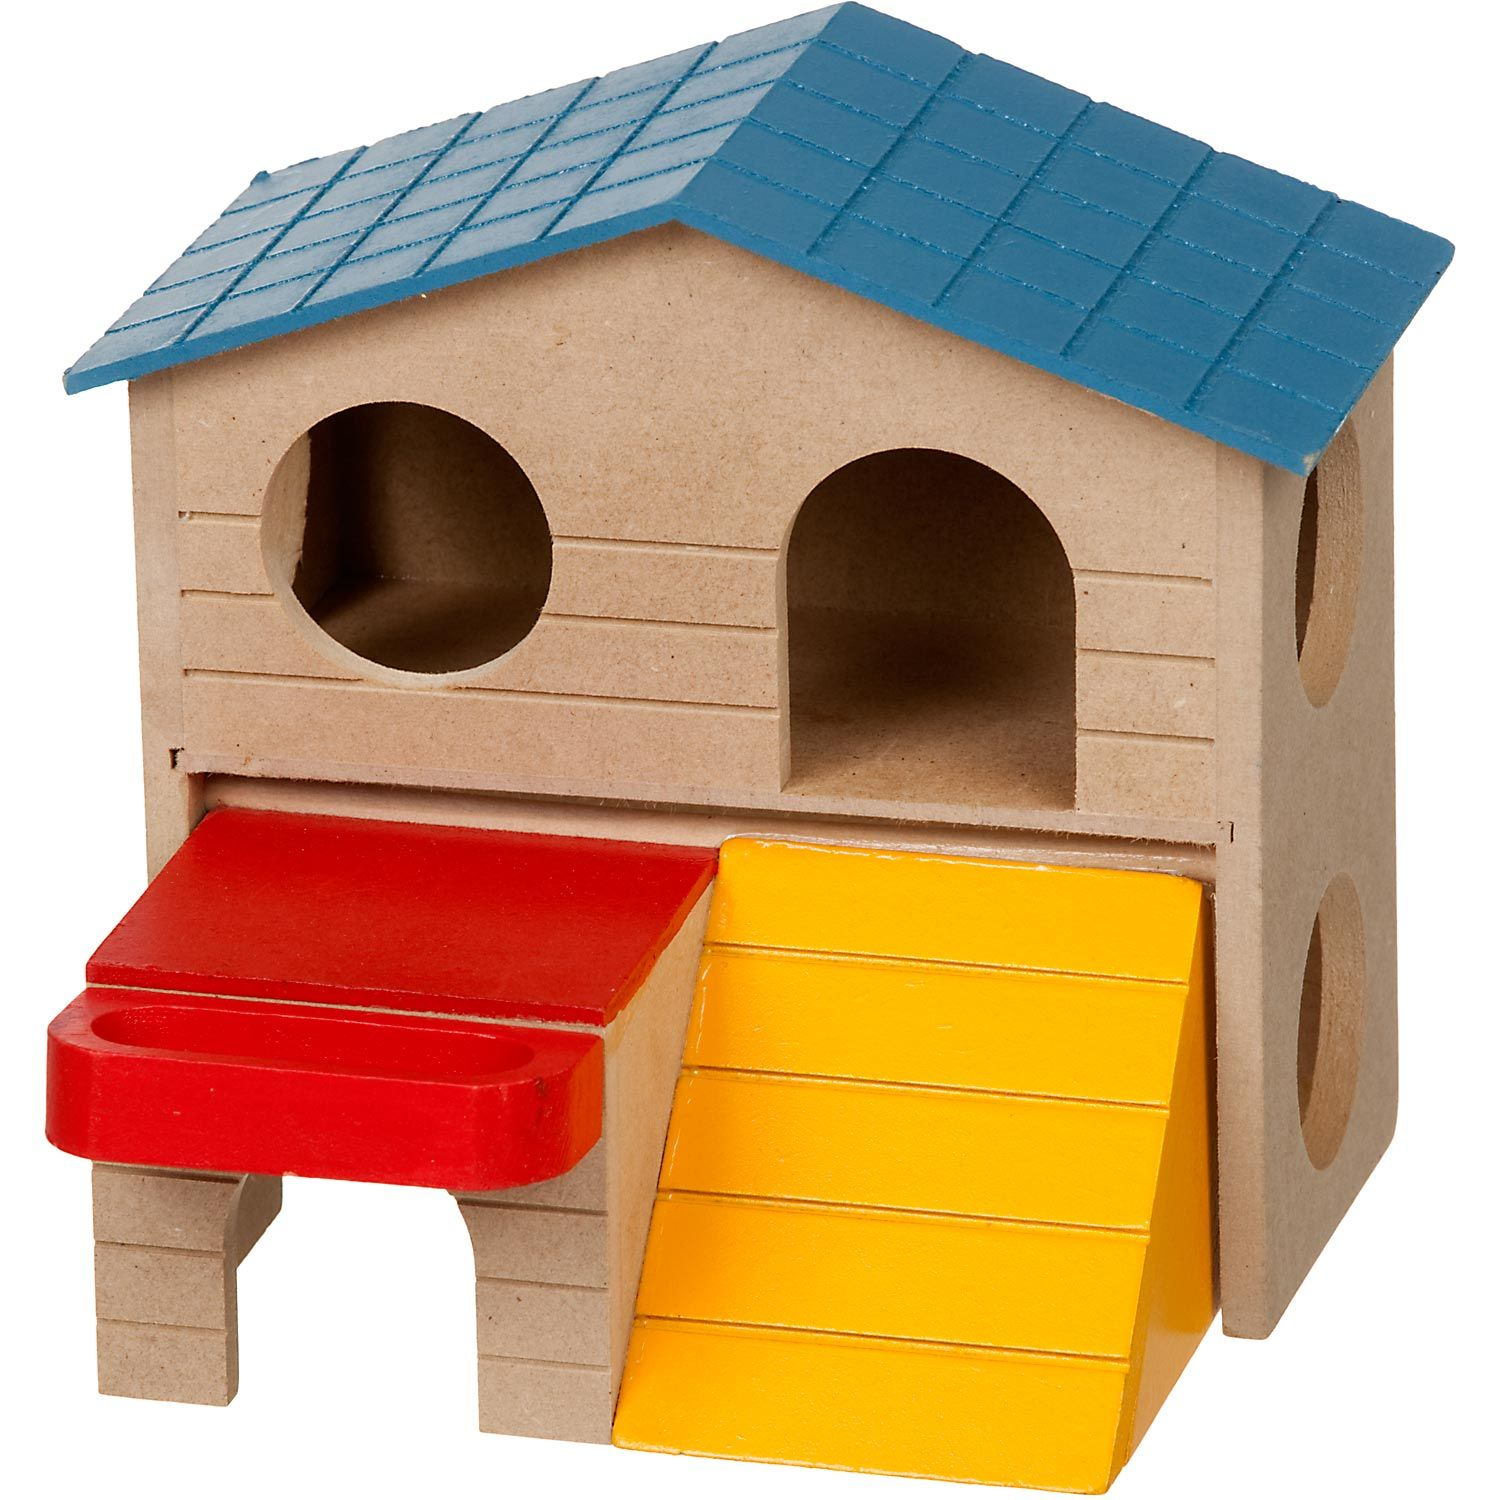 Petco 2 Story Hamster House Hamster House Hamster Toys Small Pets